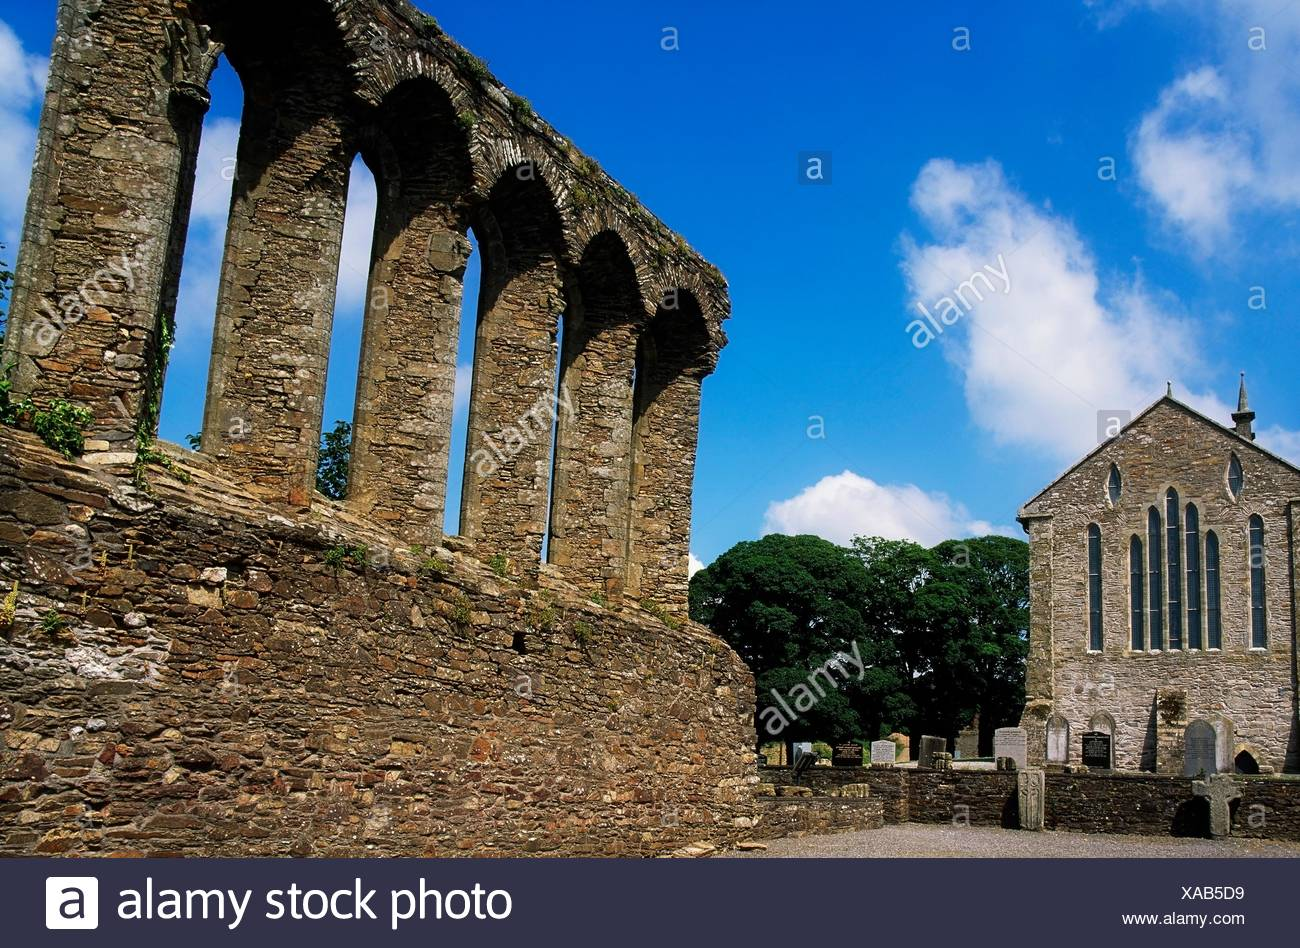 St Mary's Abbey, Ferns, Co Wexford, Ireland - Stock Image